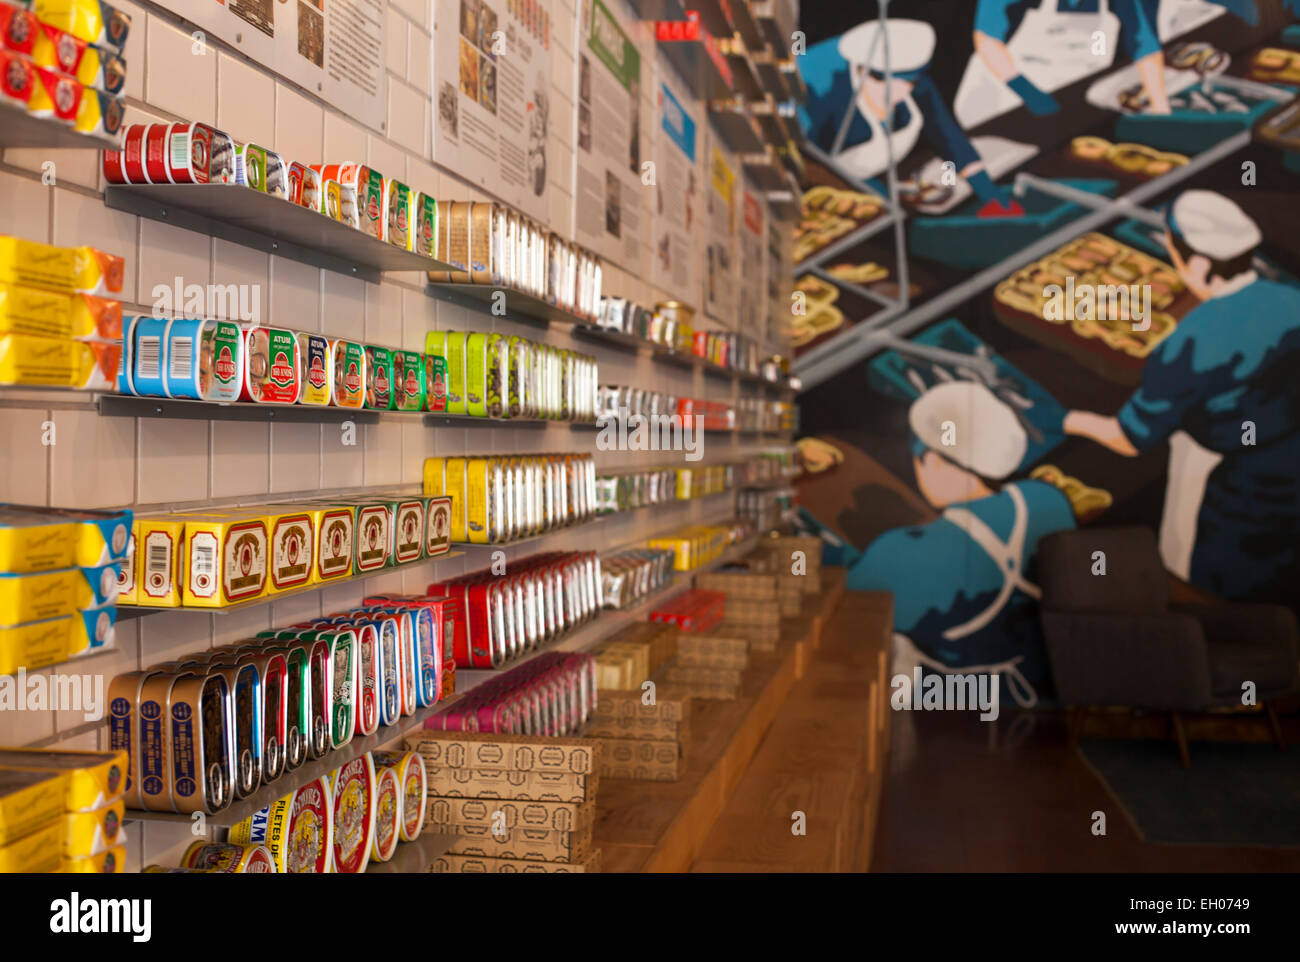 SHOP ' A LOJA DAS CONSERVAS ' WITH TINNED FISH AT DOWNTOWN LISBON, PORTUGAL. - Stock Image